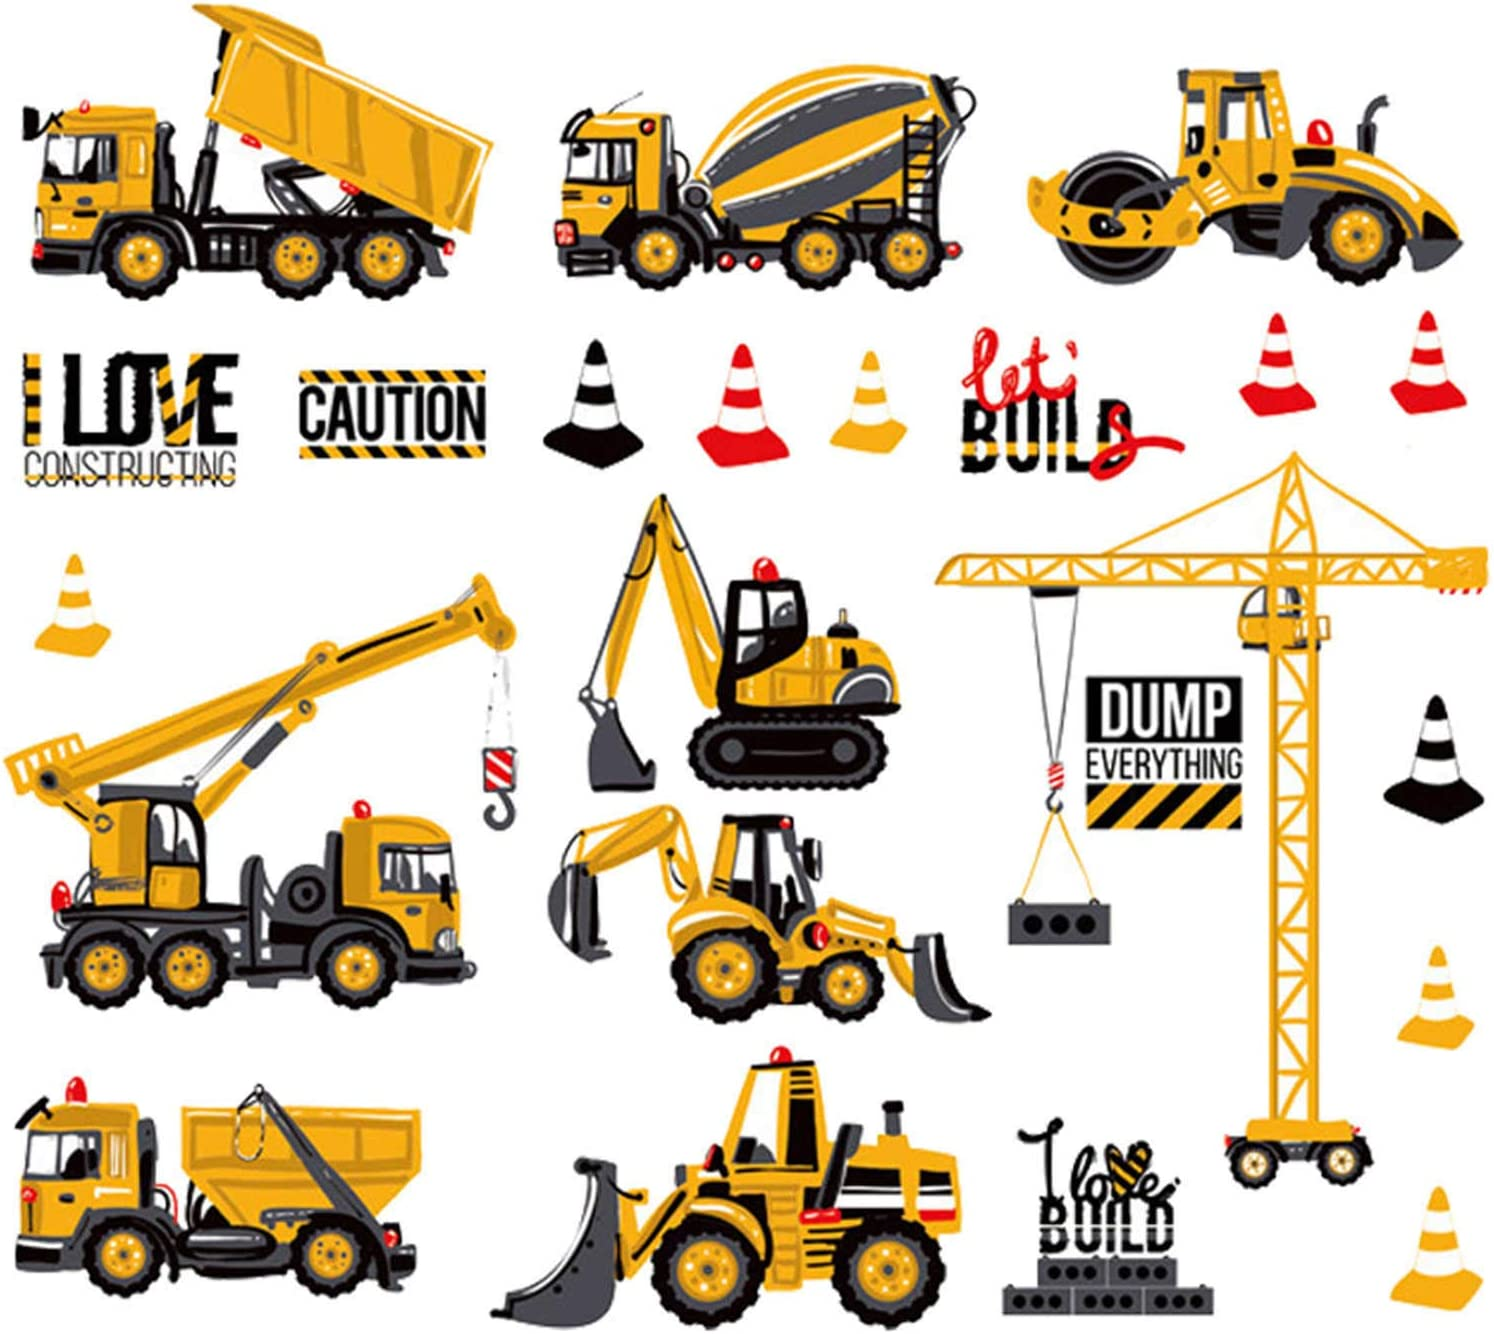 City Construction Cartoon Baby Boy Wall Decals Excavator Decorative Wall Stickers Vinyl Peel Stick Gifts for Kids Boys Nursery Bedroom